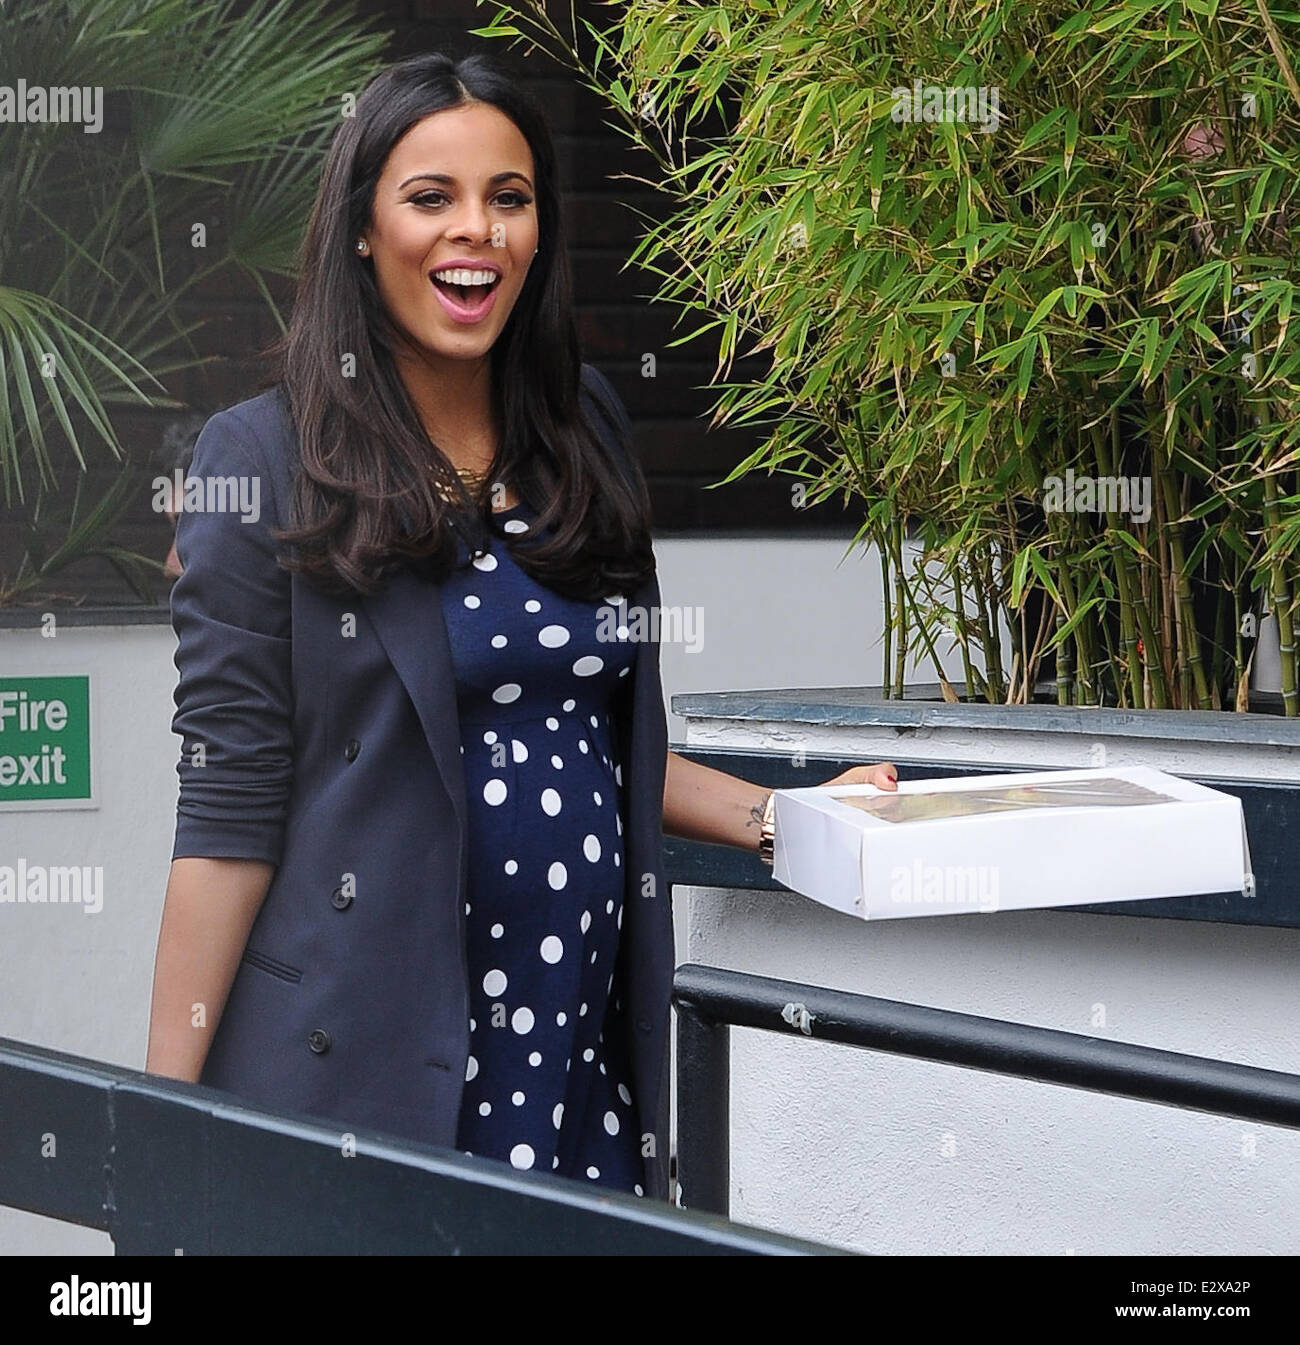 f2528d4754047 Pregnant birthday girl Rochelle Humes of The Saturdays leaves the ITV  studios in a blue polka dot dress Featuring: Rochelle Humes Where: London,  ...